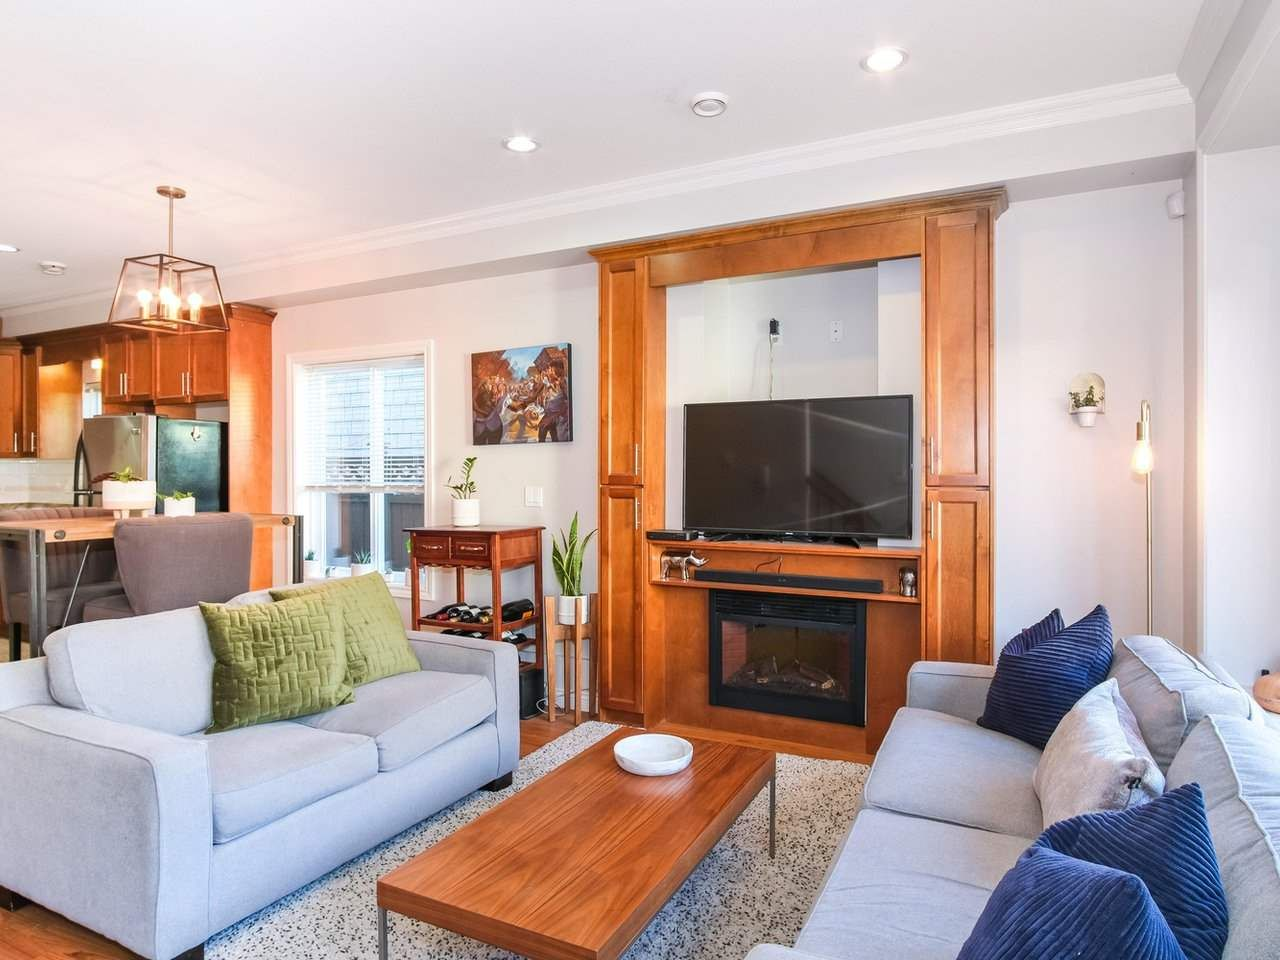 Main Photo: 2151 TRIUMPH Street in Vancouver: Hastings Sunrise 1/2 Duplex for sale (Vancouver East)  : MLS®# R2412946